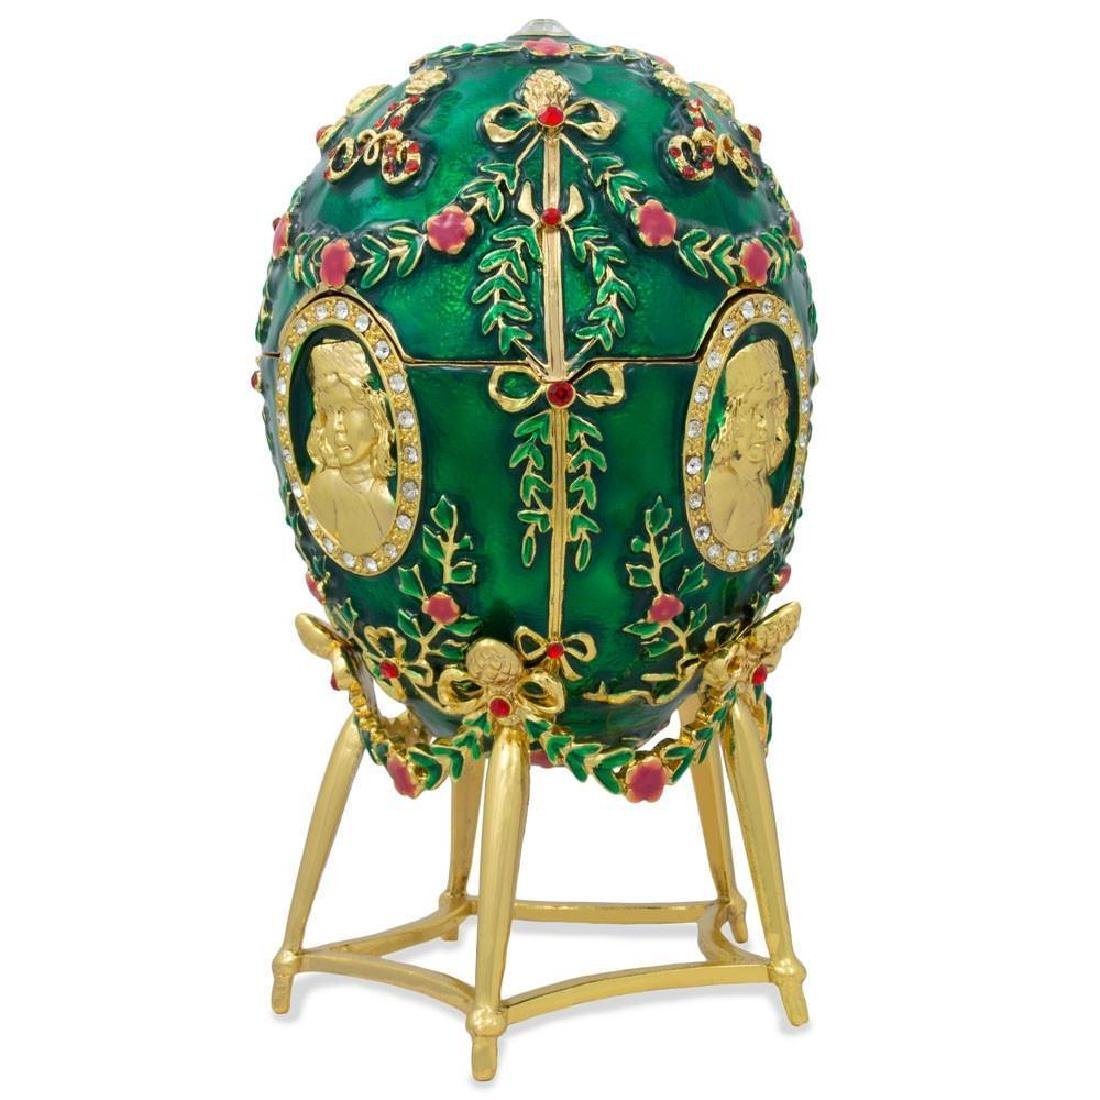 Faberge Inspired 1908 Alexander Palace Faberge Egg - 4